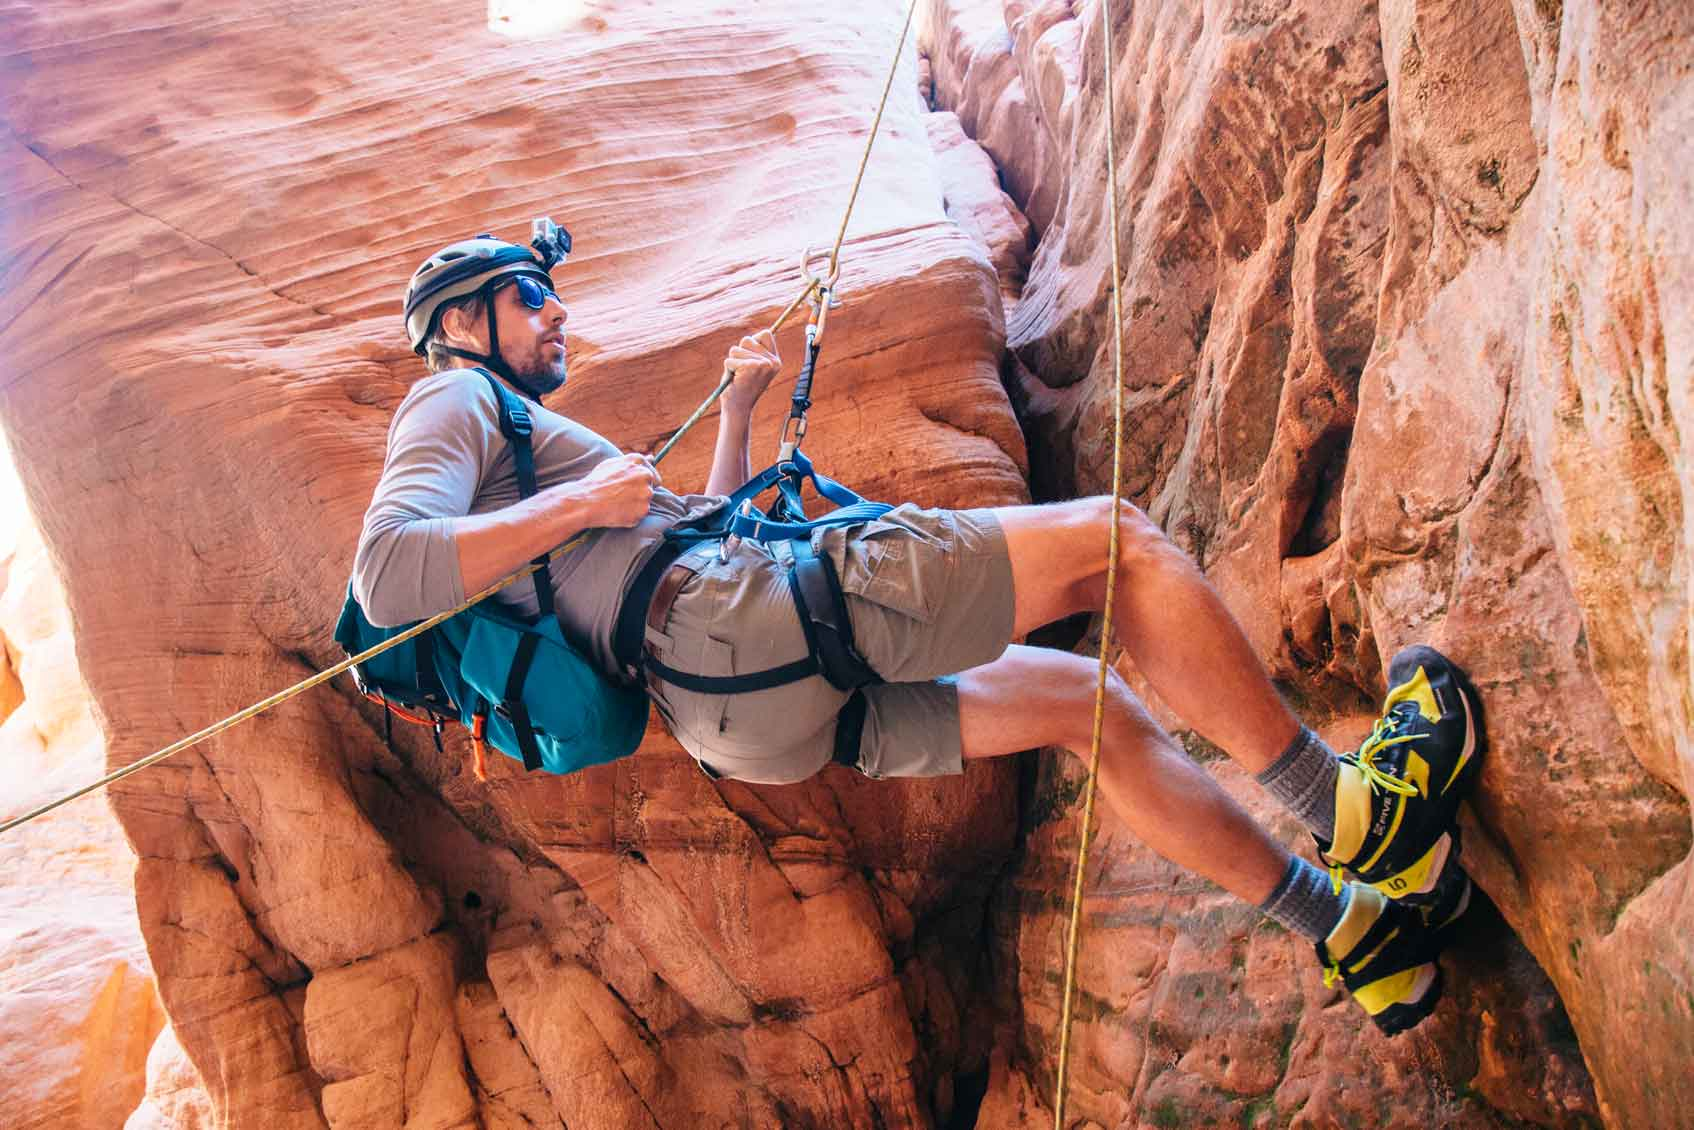 Michael repelling into a slot canyon